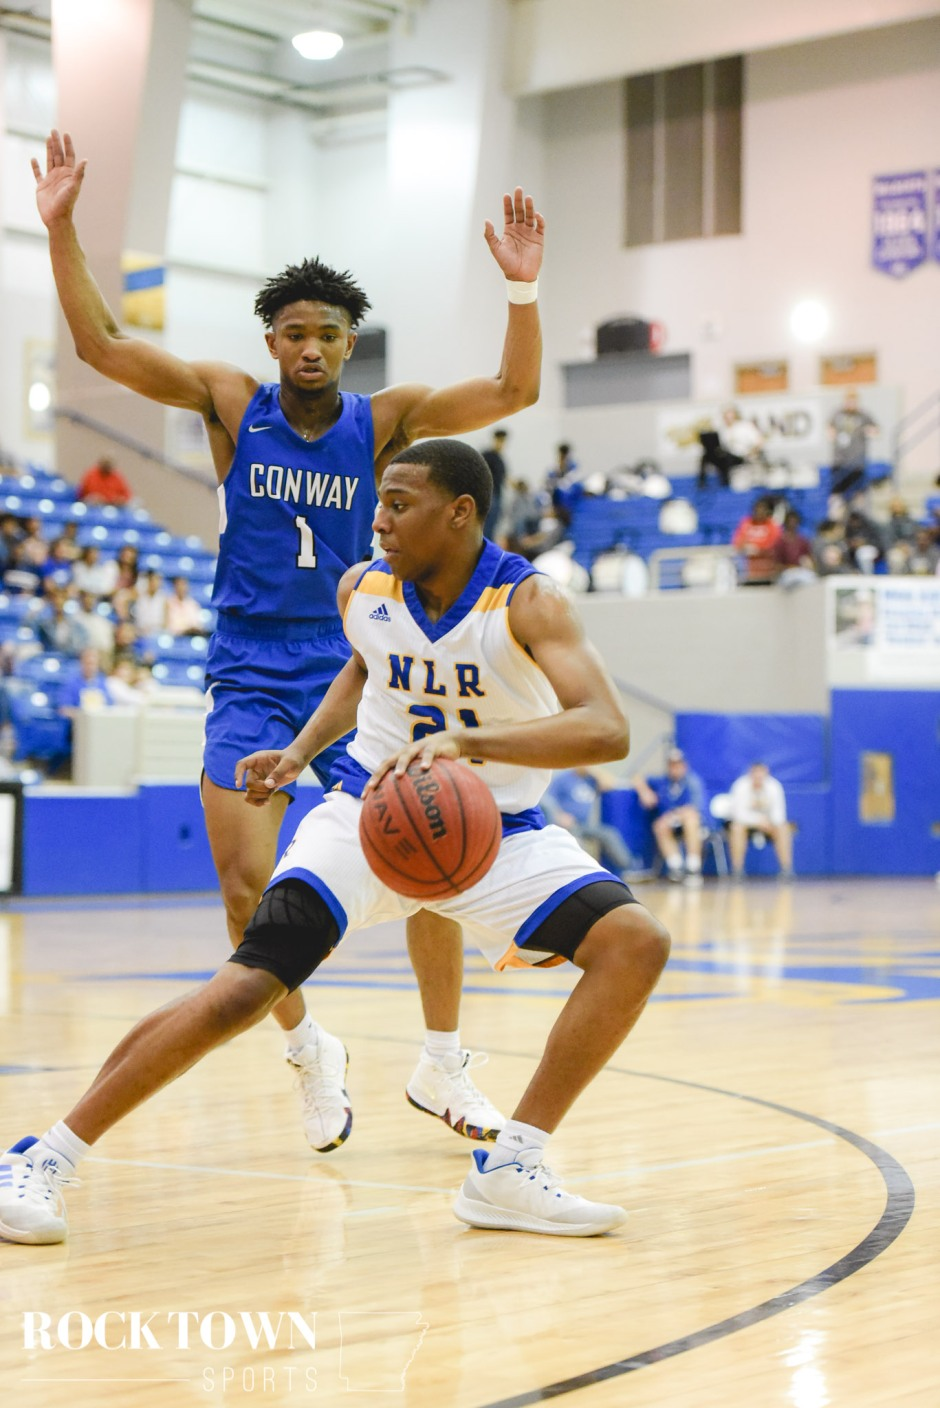 Conway_NLR_bball19(i)-61